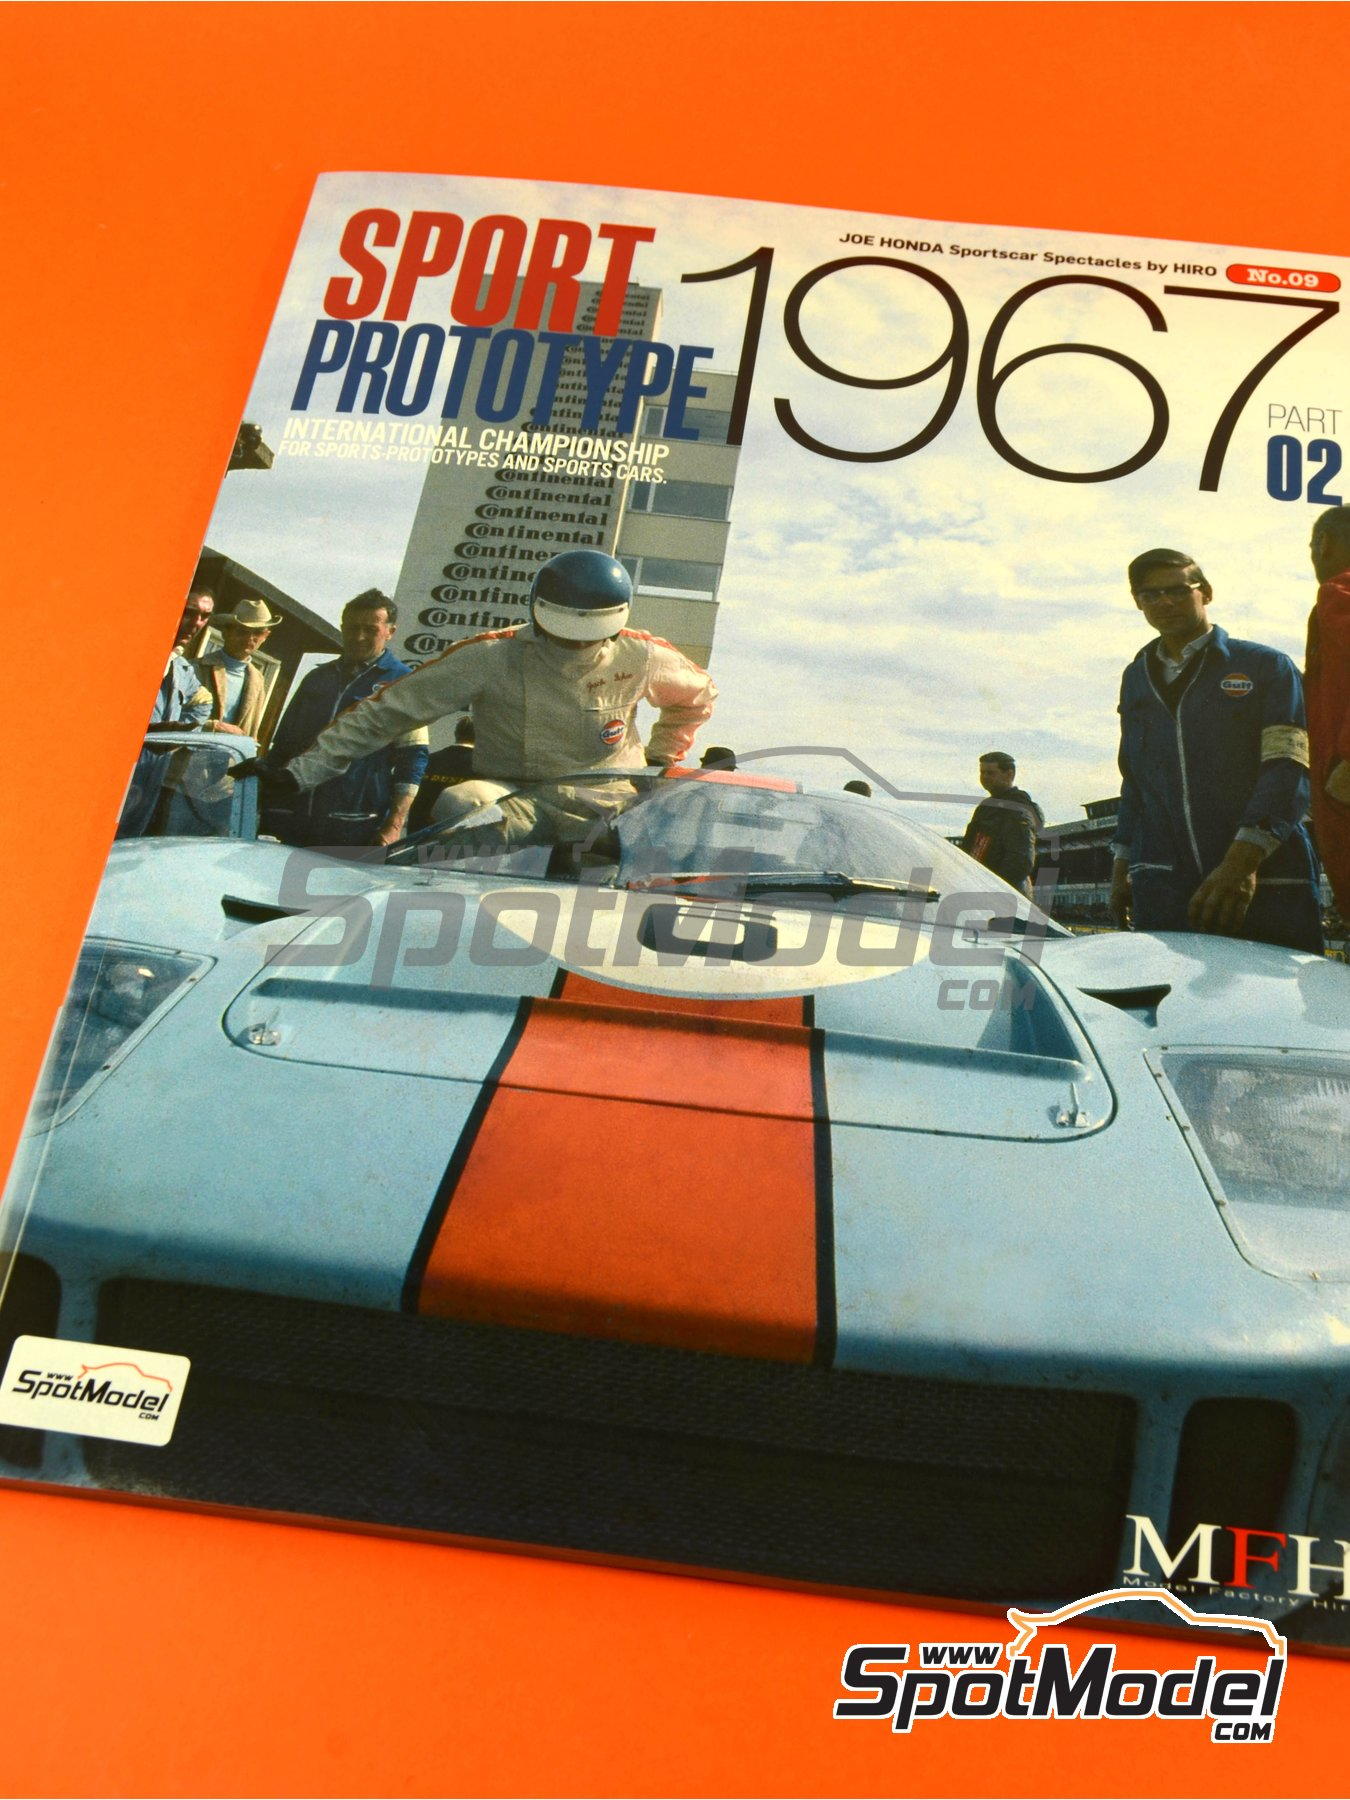 JOE HONDA - Sportcar Spectacles - Sport Prototypes - Part 2 - 1000 Kms Monza, 1000 Kms Nürburgring, 1000 Kms SPA, 500 Kms BOAC Sports Race 1967 | Reference / walkaround book manufactured by Model Factory Hiro (ref. MFH-SS009) image